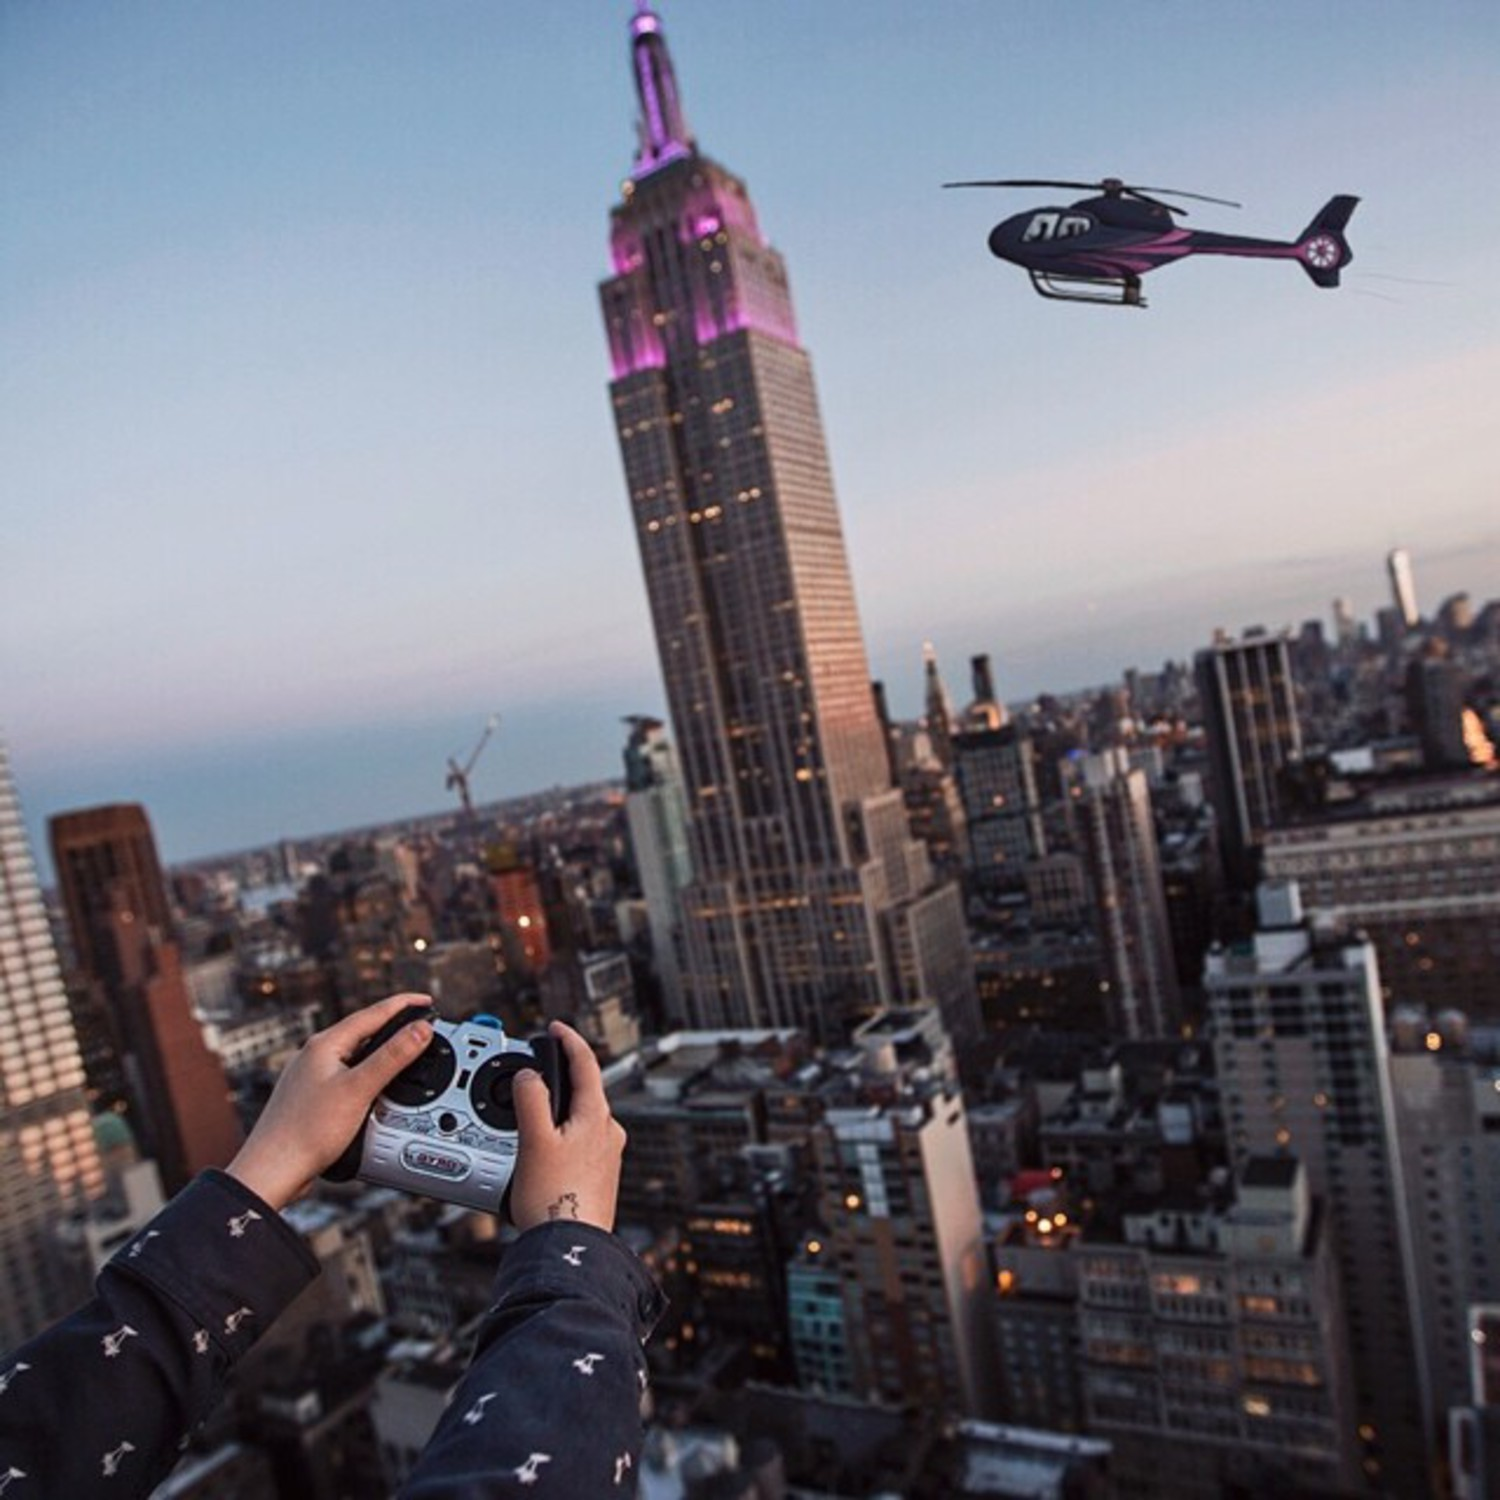 Flyin' around ESB🚁  Photo by @jerm_cohen